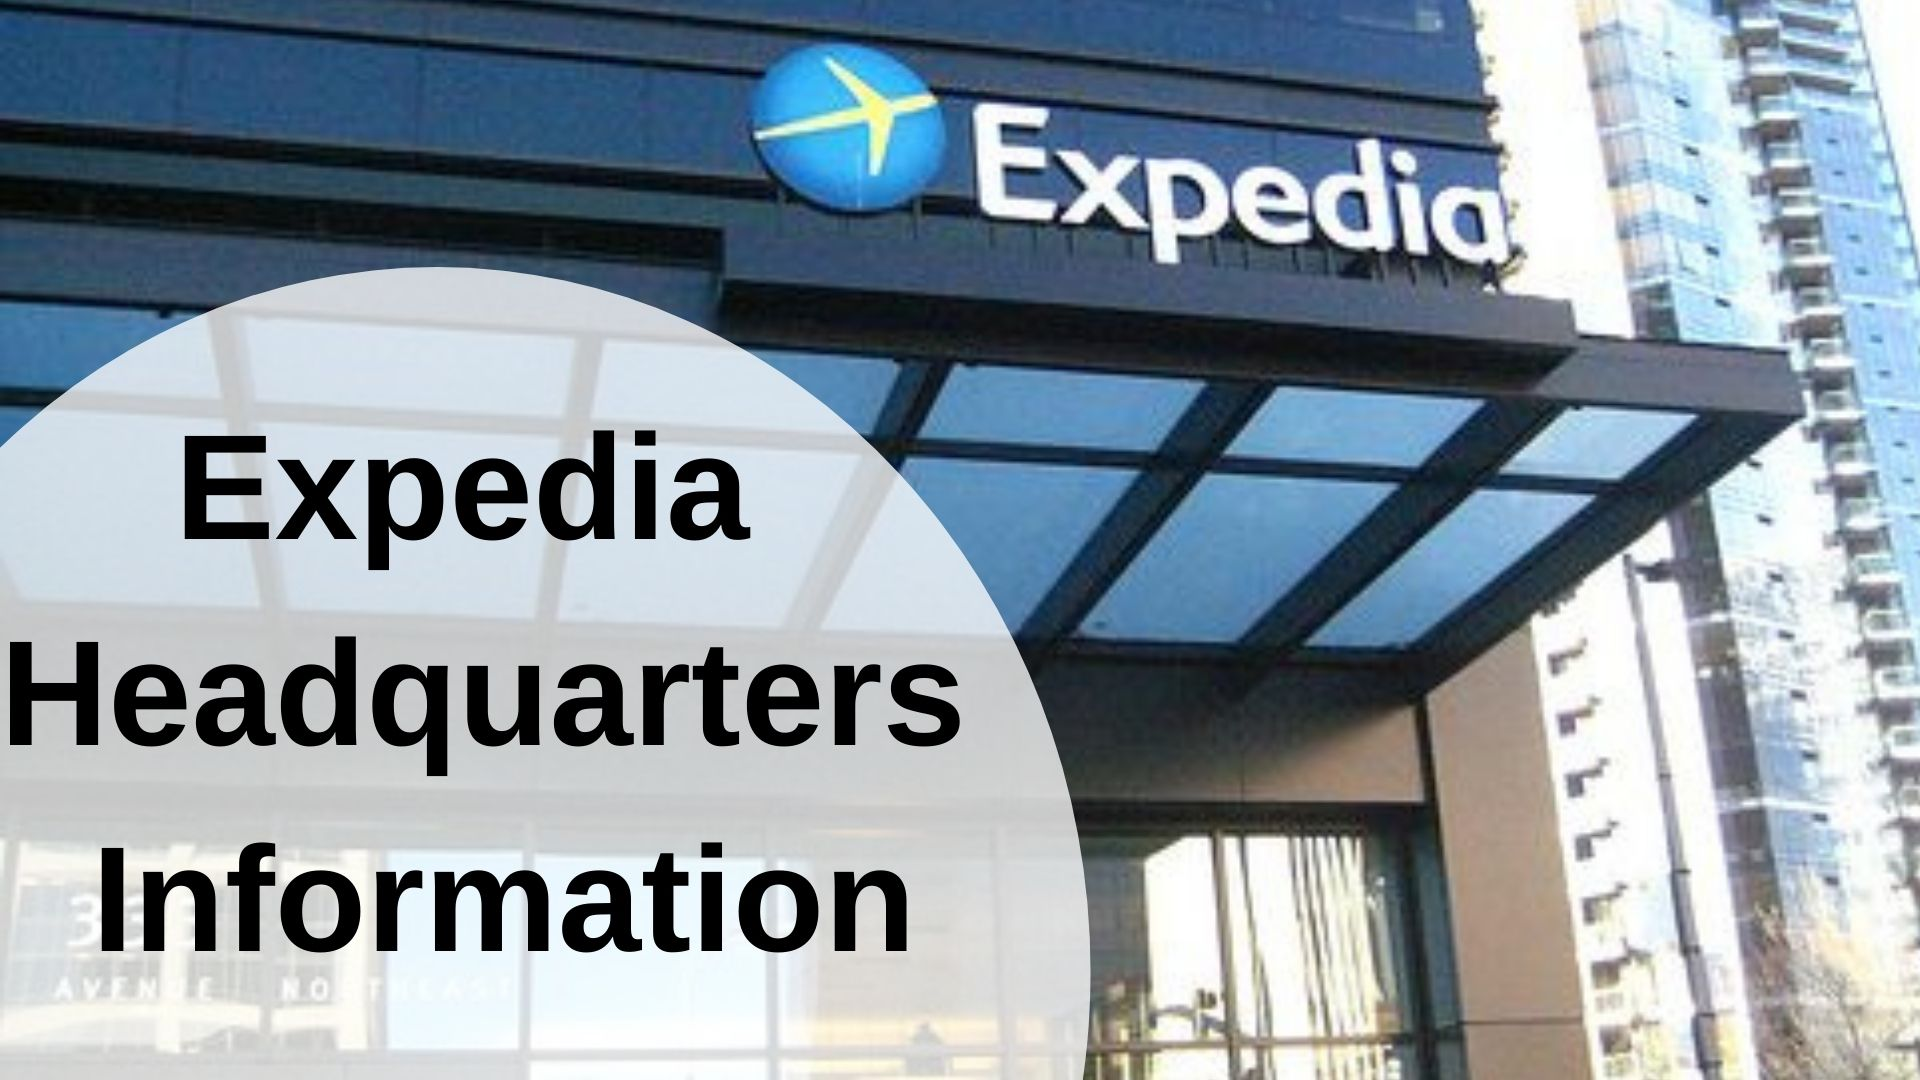 Expedia Headquarters Information